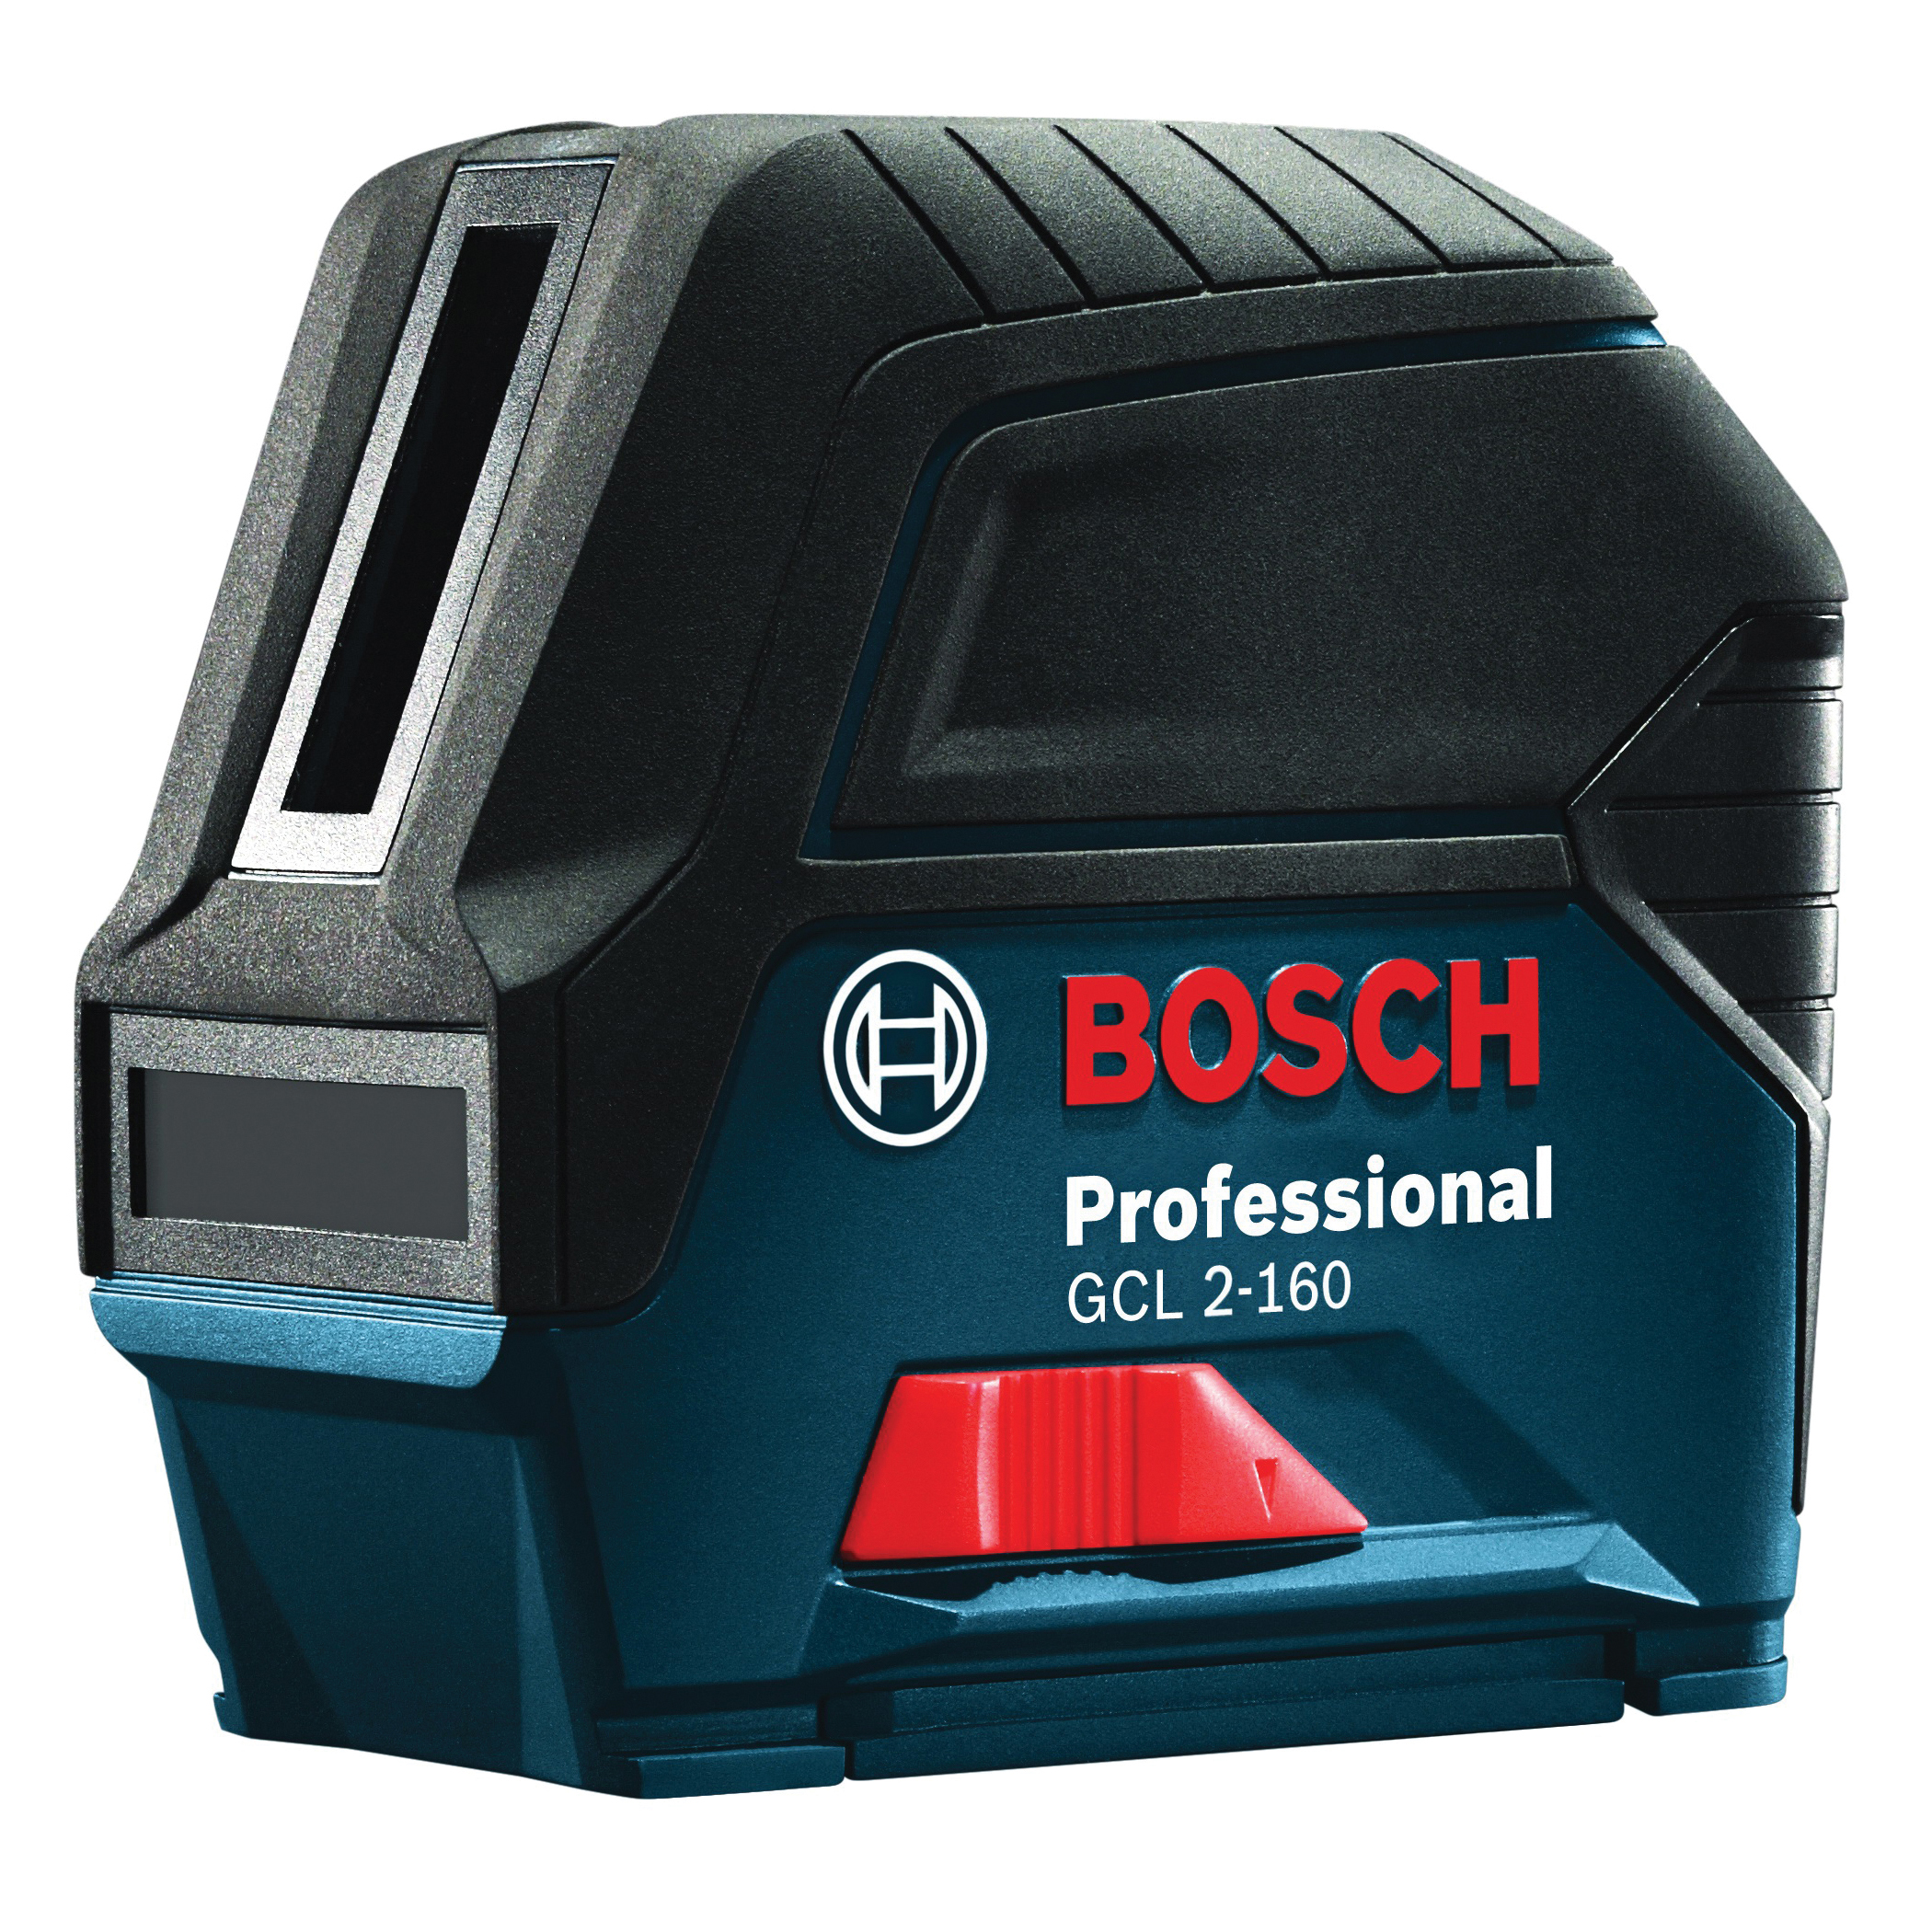 Picture of Bosch GCL 2-160 Cross-Line Laser with Plumb Points, 165 ft, +/-1/8 in at 33 ft Accuracy